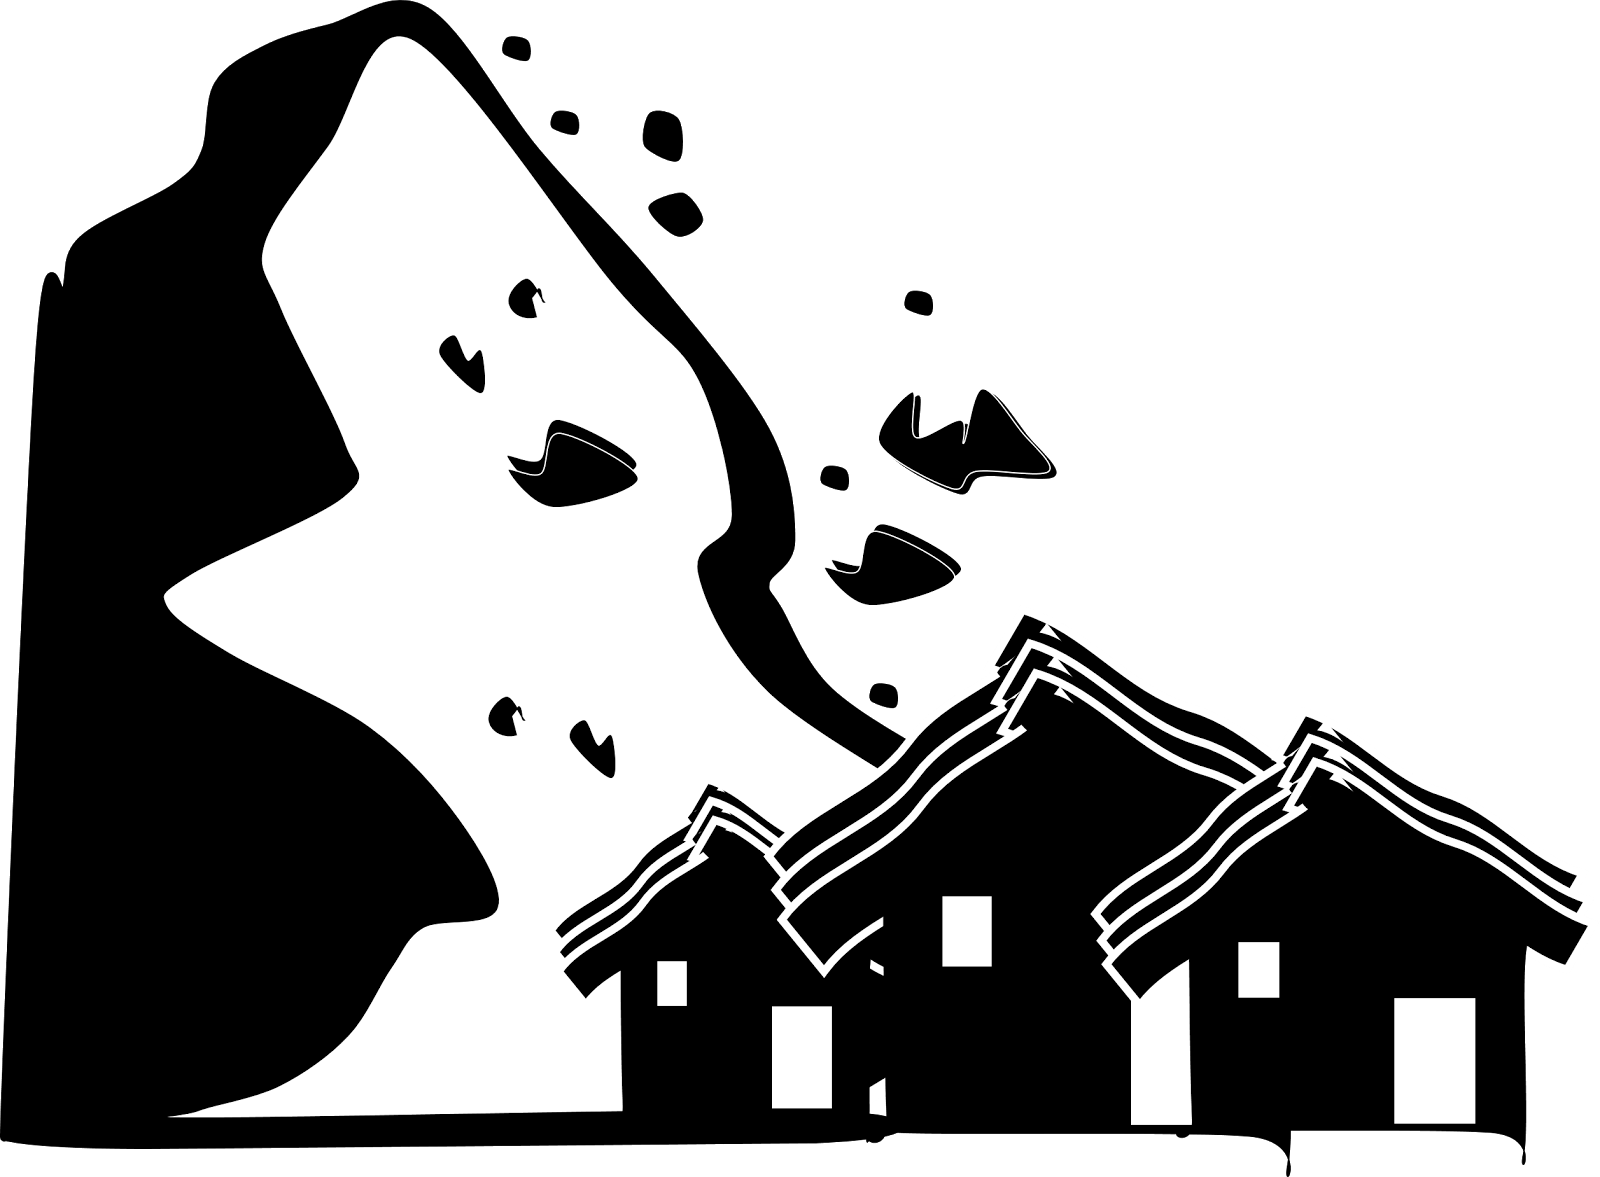 Free Earthquake Clipart Black And White, Download Free Clip.